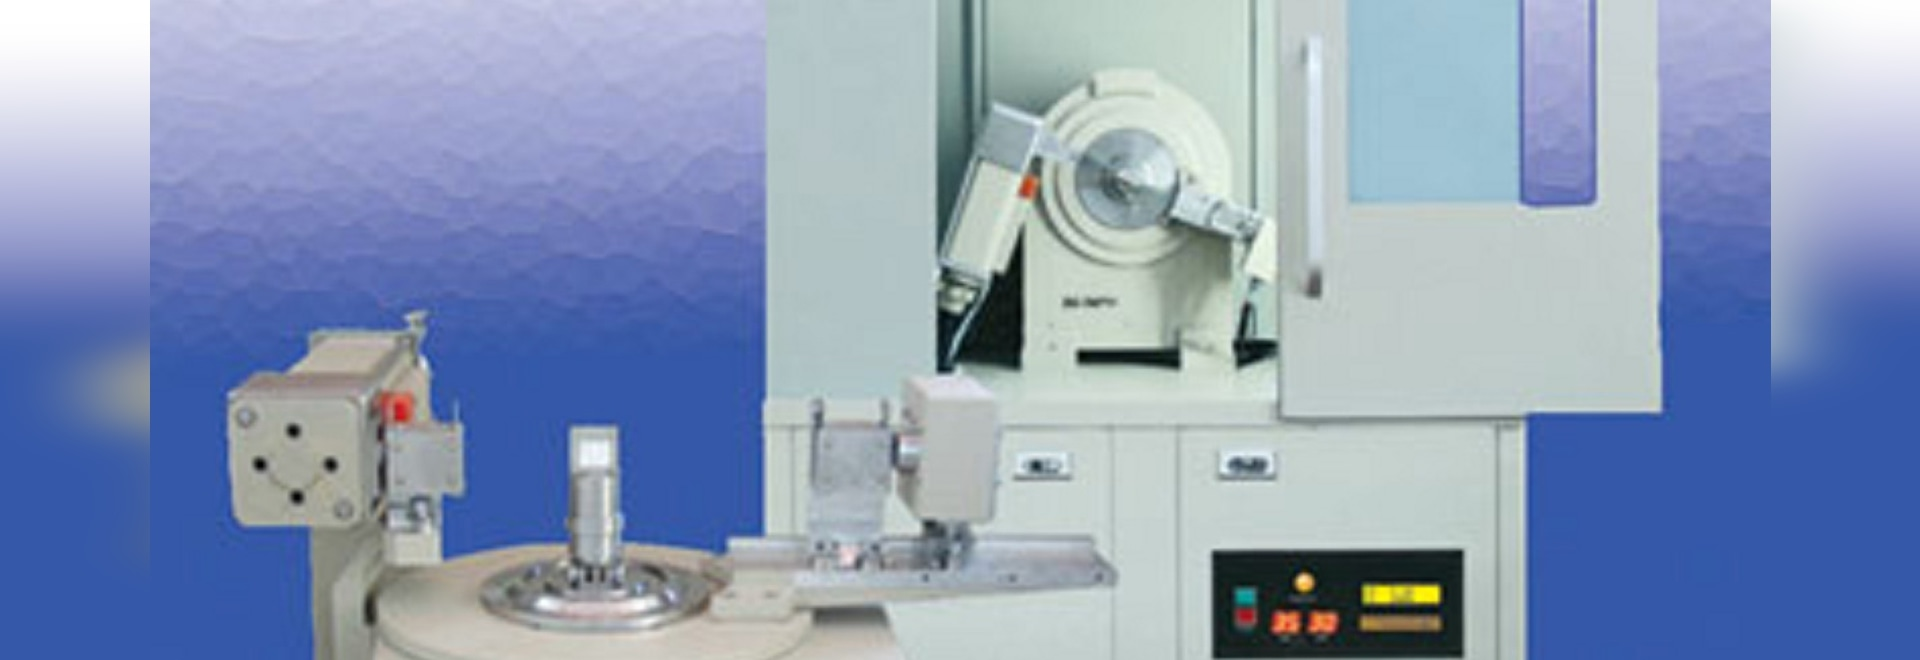 ADX-2700 X-ray Powder Diffraction Instrument